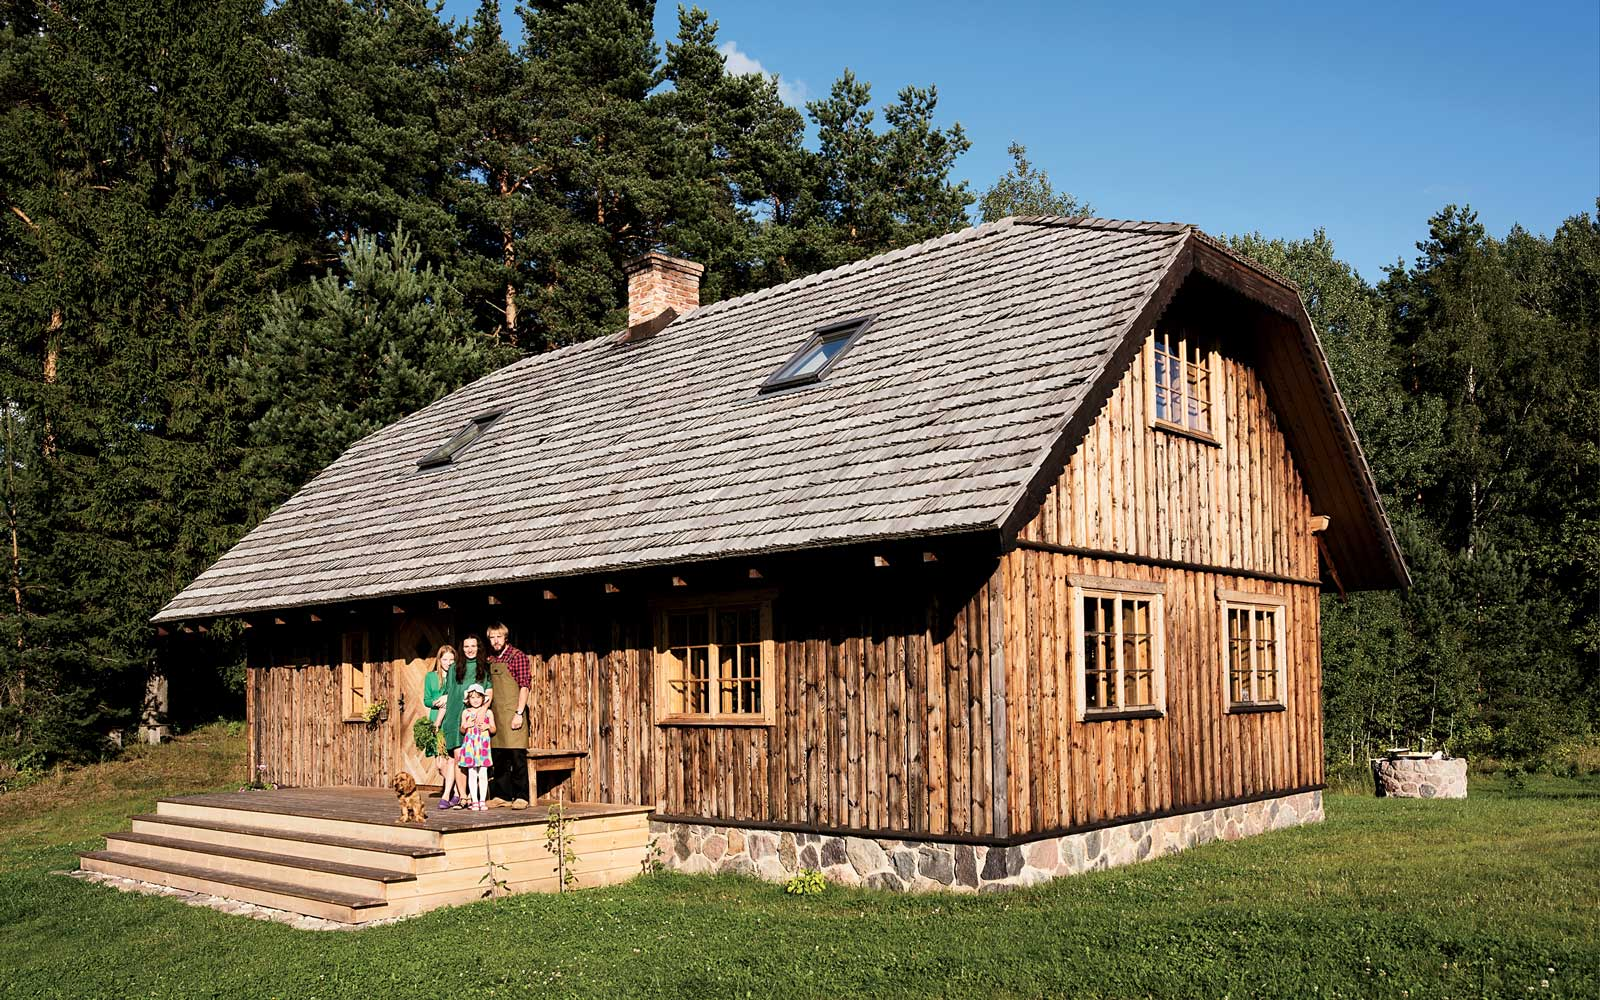 Jacob Dimiters and his family in the Latvian countryside